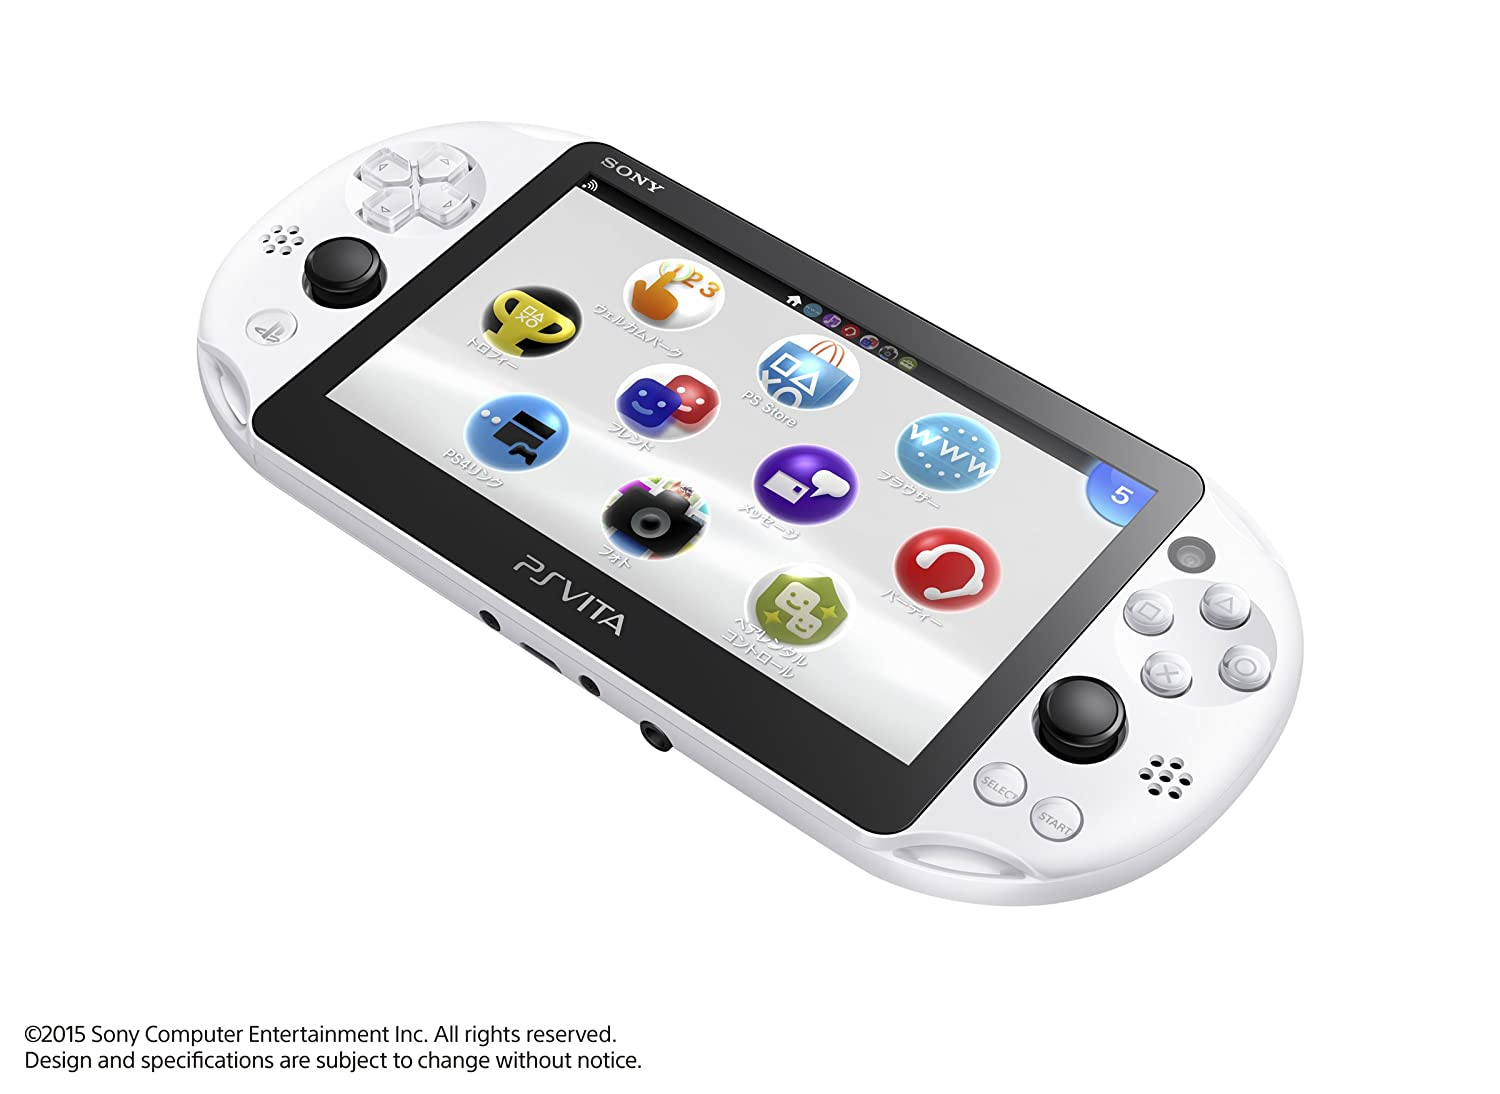 PlayStation Vita Wi-Fi model Glacier White PCH-2000ZA22 Japanese Ver. Japan Import